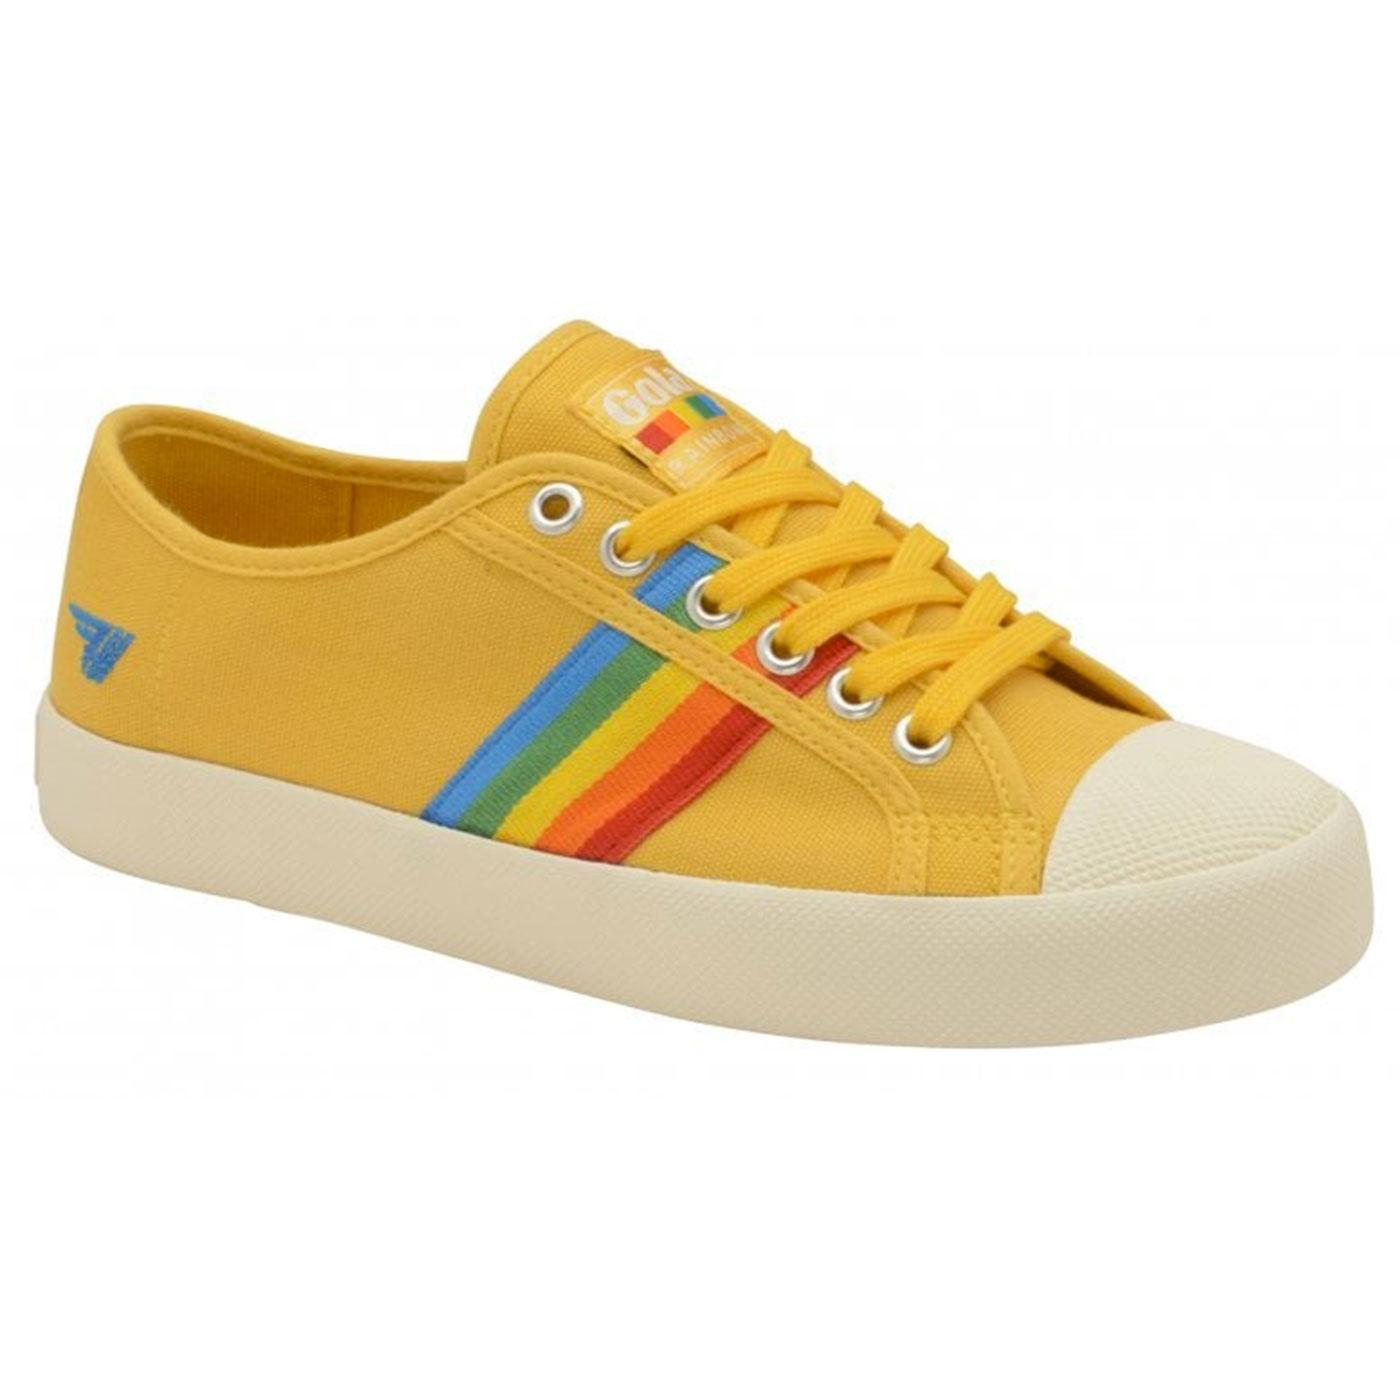 Coaster Rainbow GOLA Retro 70s Canvas Trainers SUN